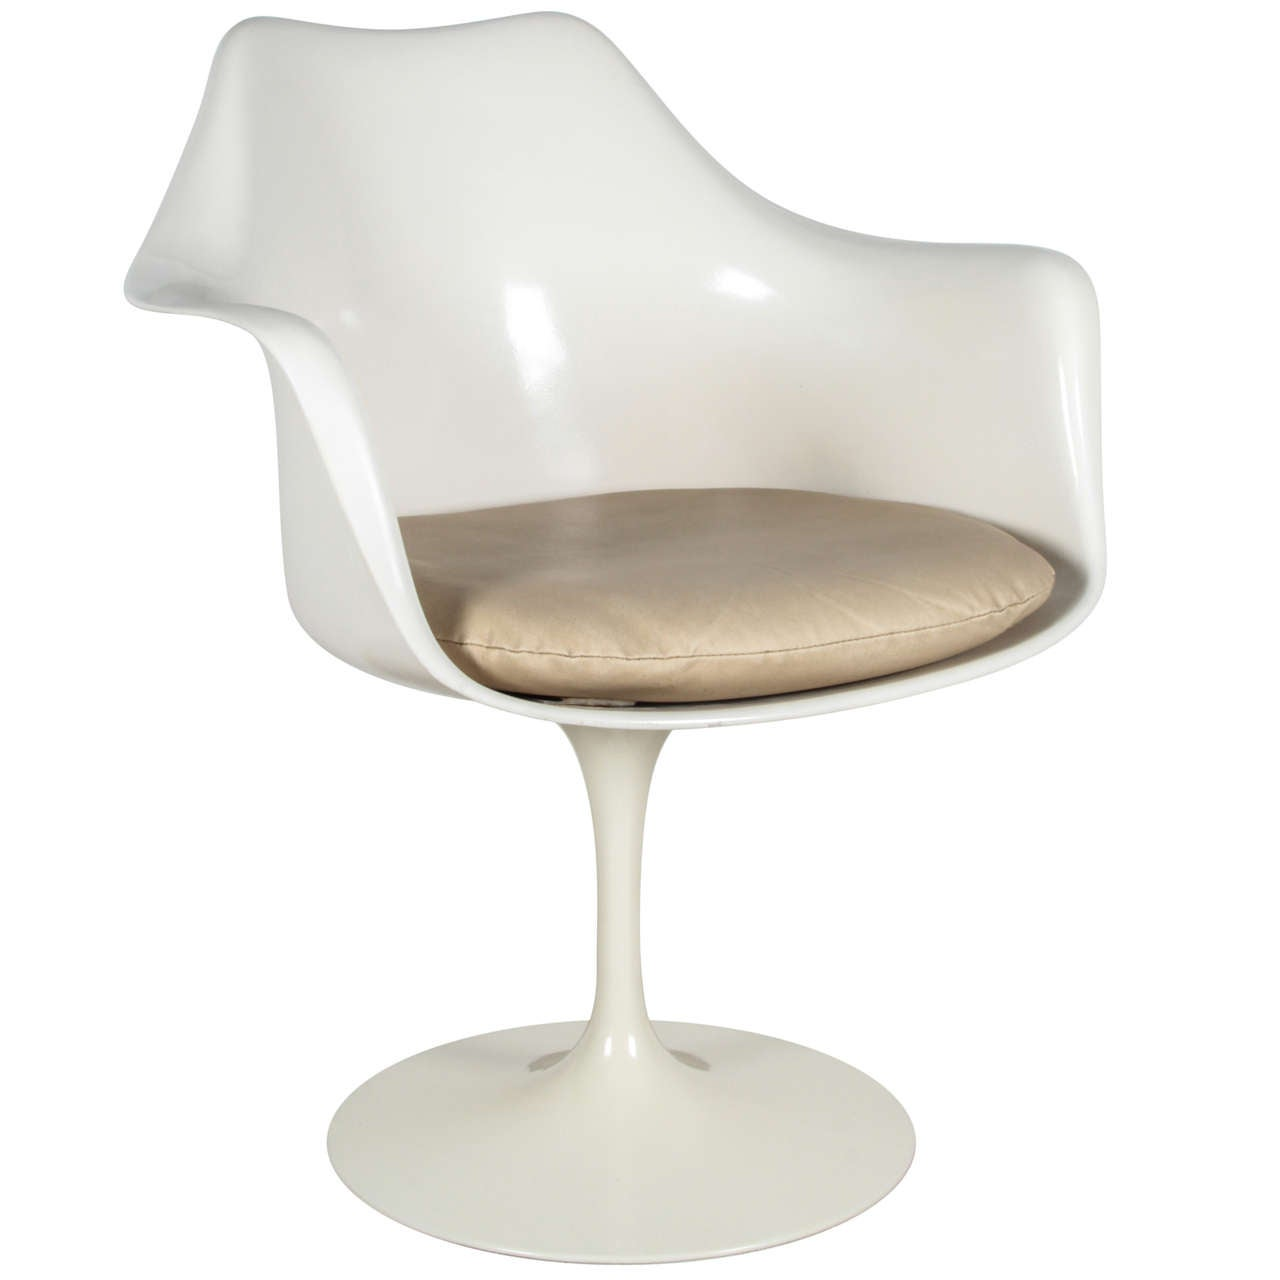 Vintage Tulip Chair By Saarinen For Knoll International